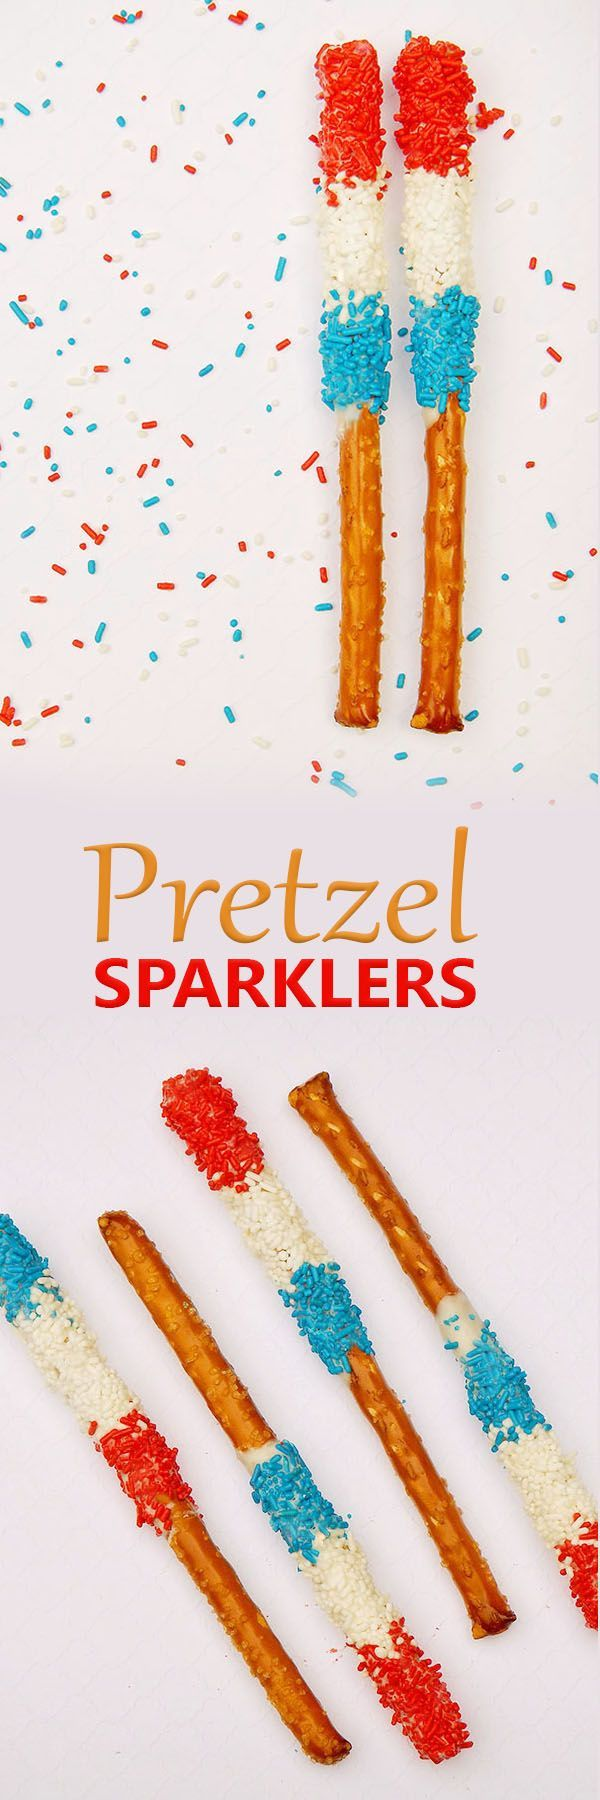 Pretzel Sparklers are so much fun for Fourth of July Dessert. Red, white, and blue sprinkles cover white chocolate dipped pretzel sticks to make a patriotic treat. Step-by-step photo tutorial included.